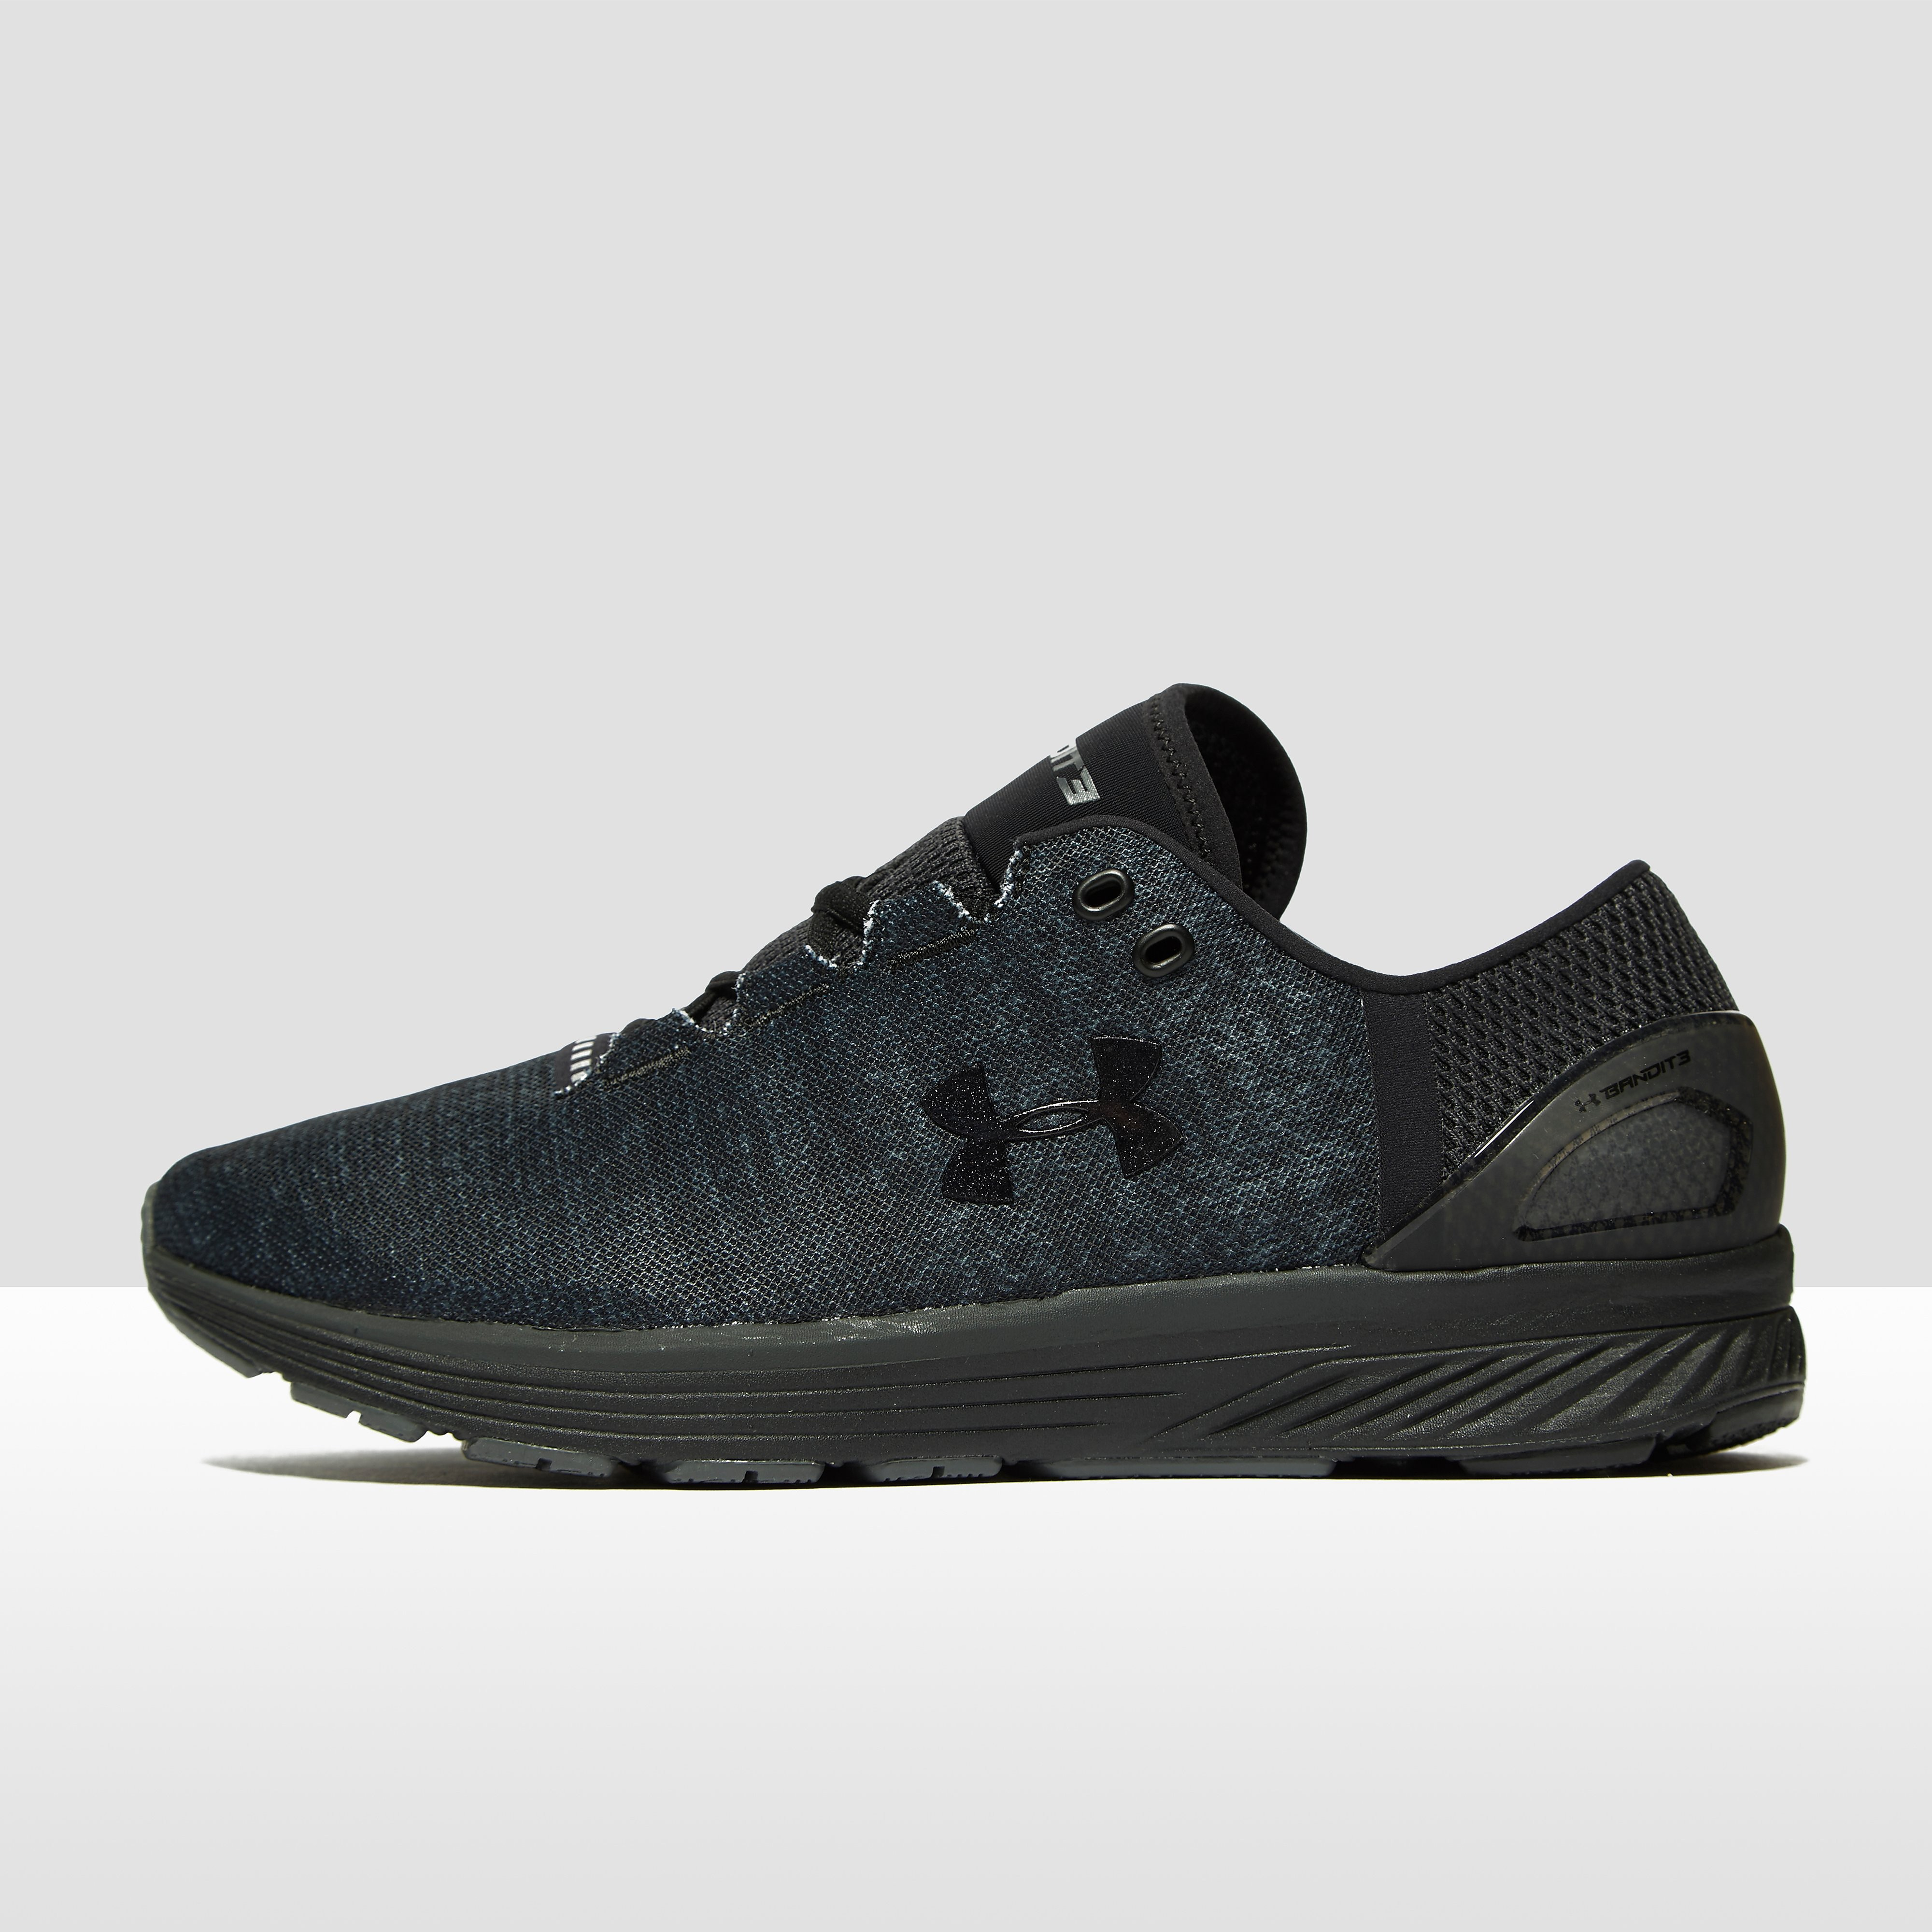 Under Armour Bandit 3 Stealth Men's Running Shoes